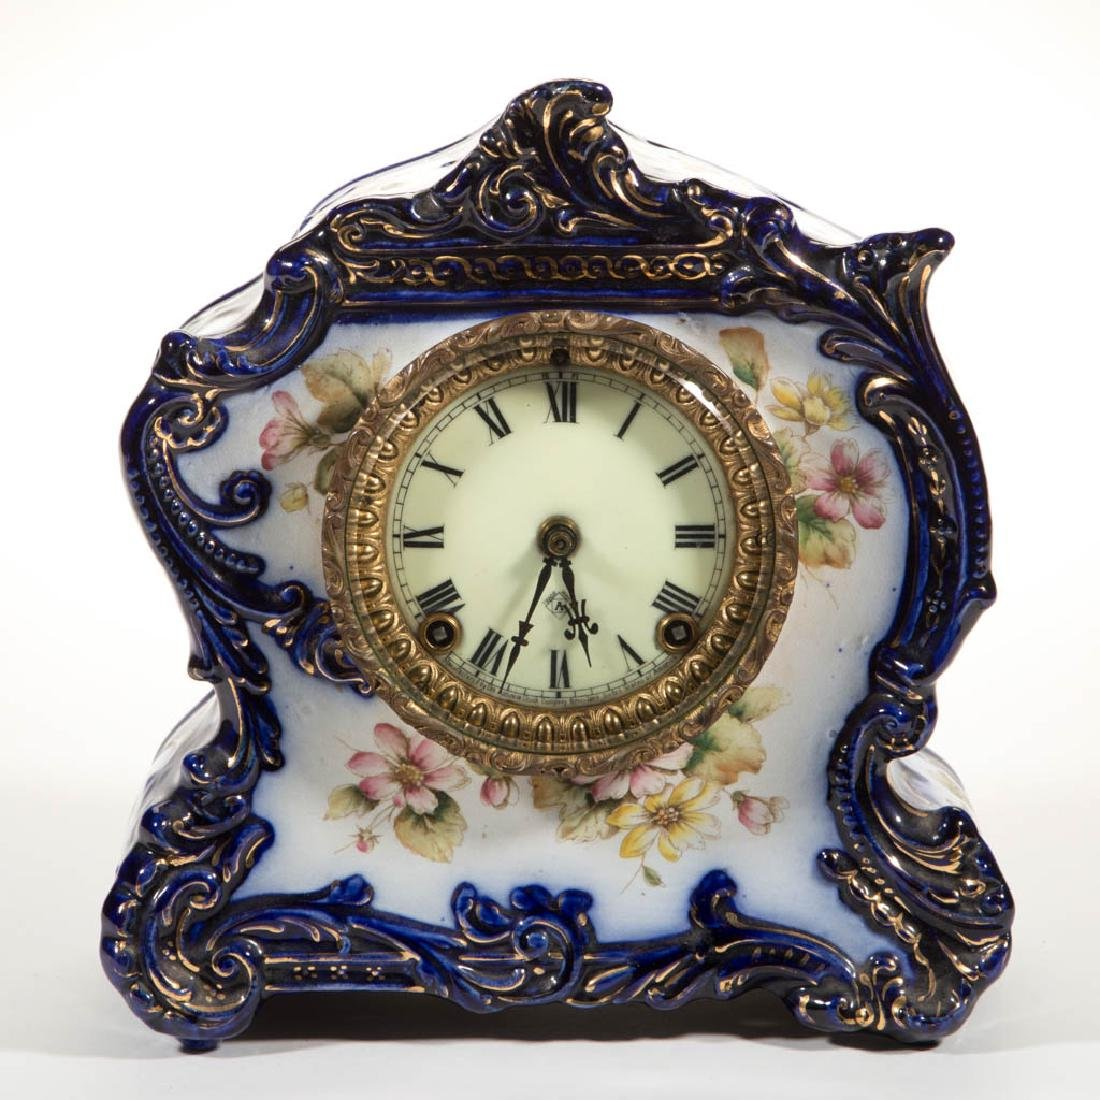 ANSONIA CHINA-CASE SHELF CLOCK